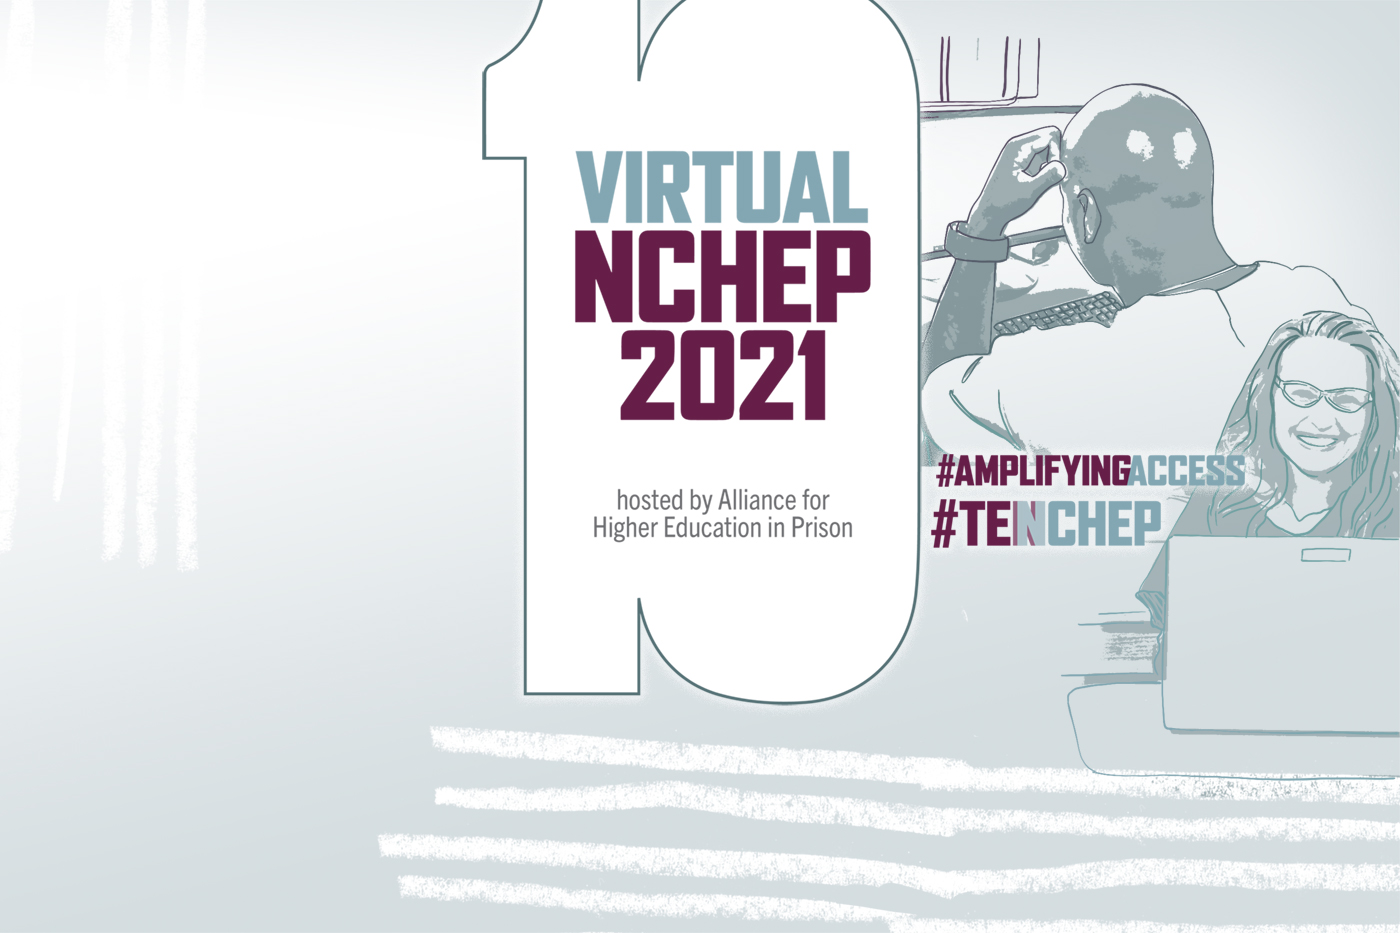 Virtual NCHEP 2021 hosted by Alliance for Higher Education in Prison #AmplifyingAccess #TENCHEP